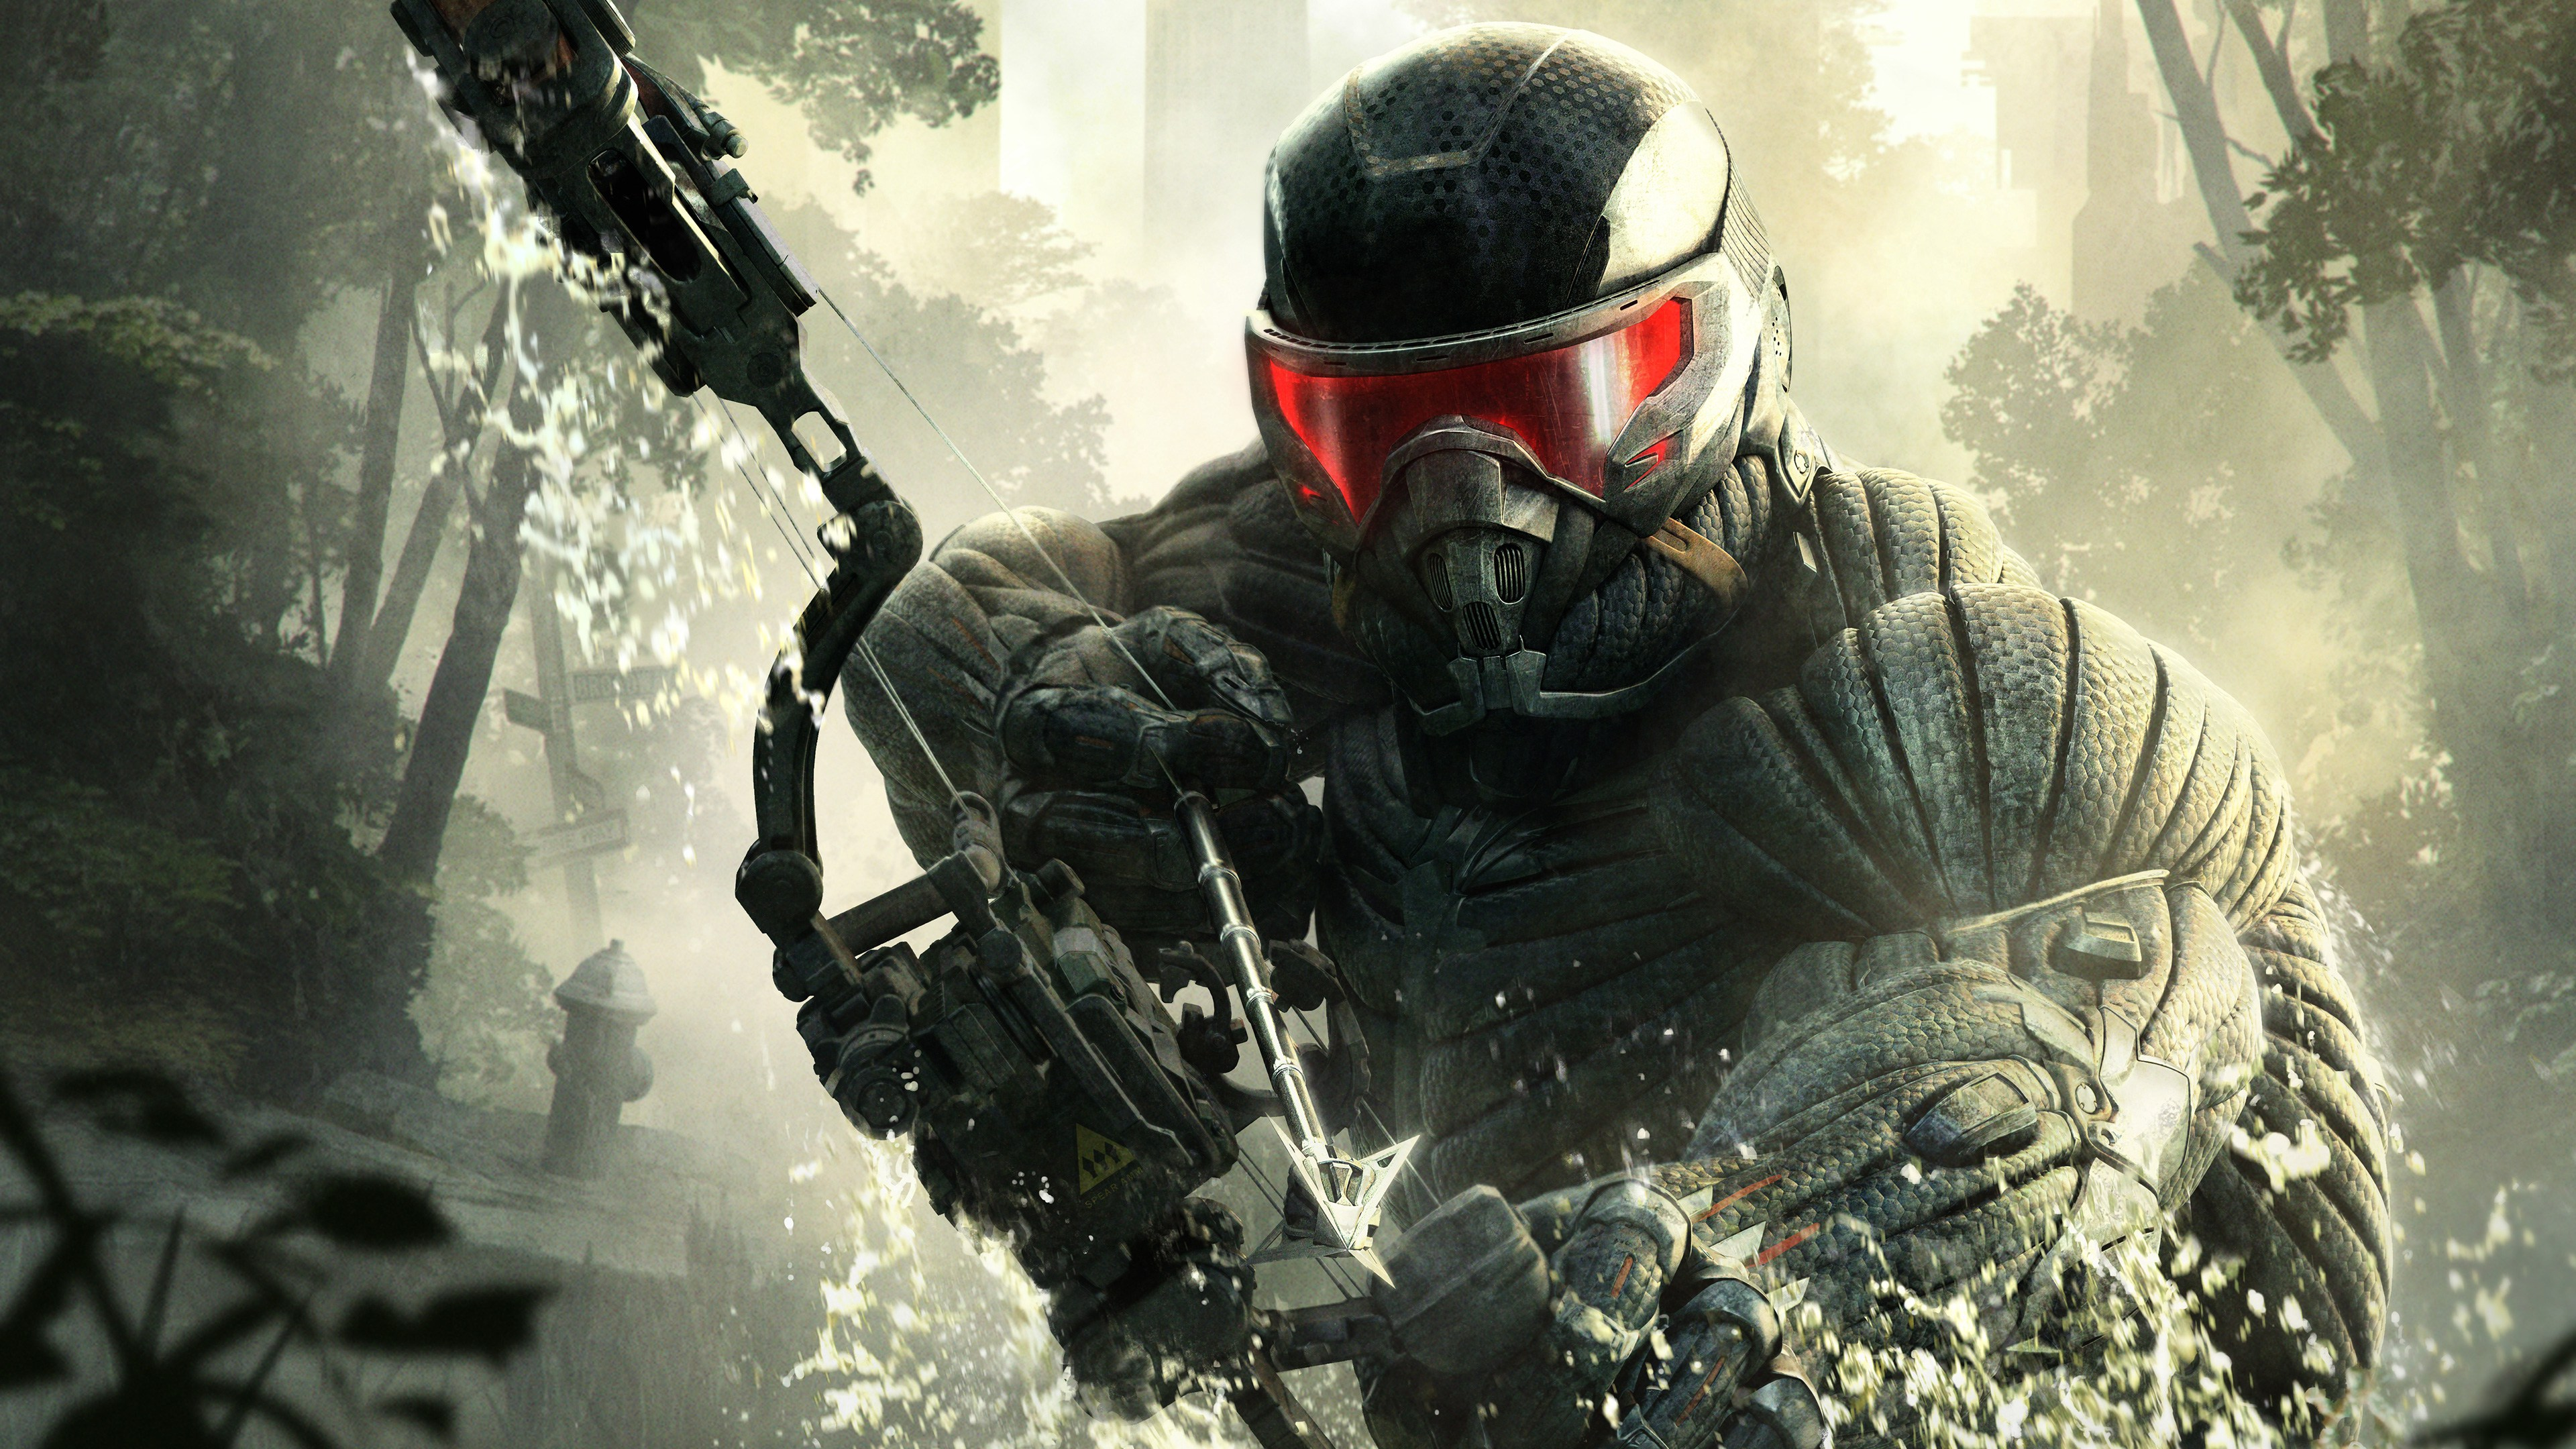 crysis 3 official game wallpaper,Crysis 3 4K HD Desktop Wallpaper